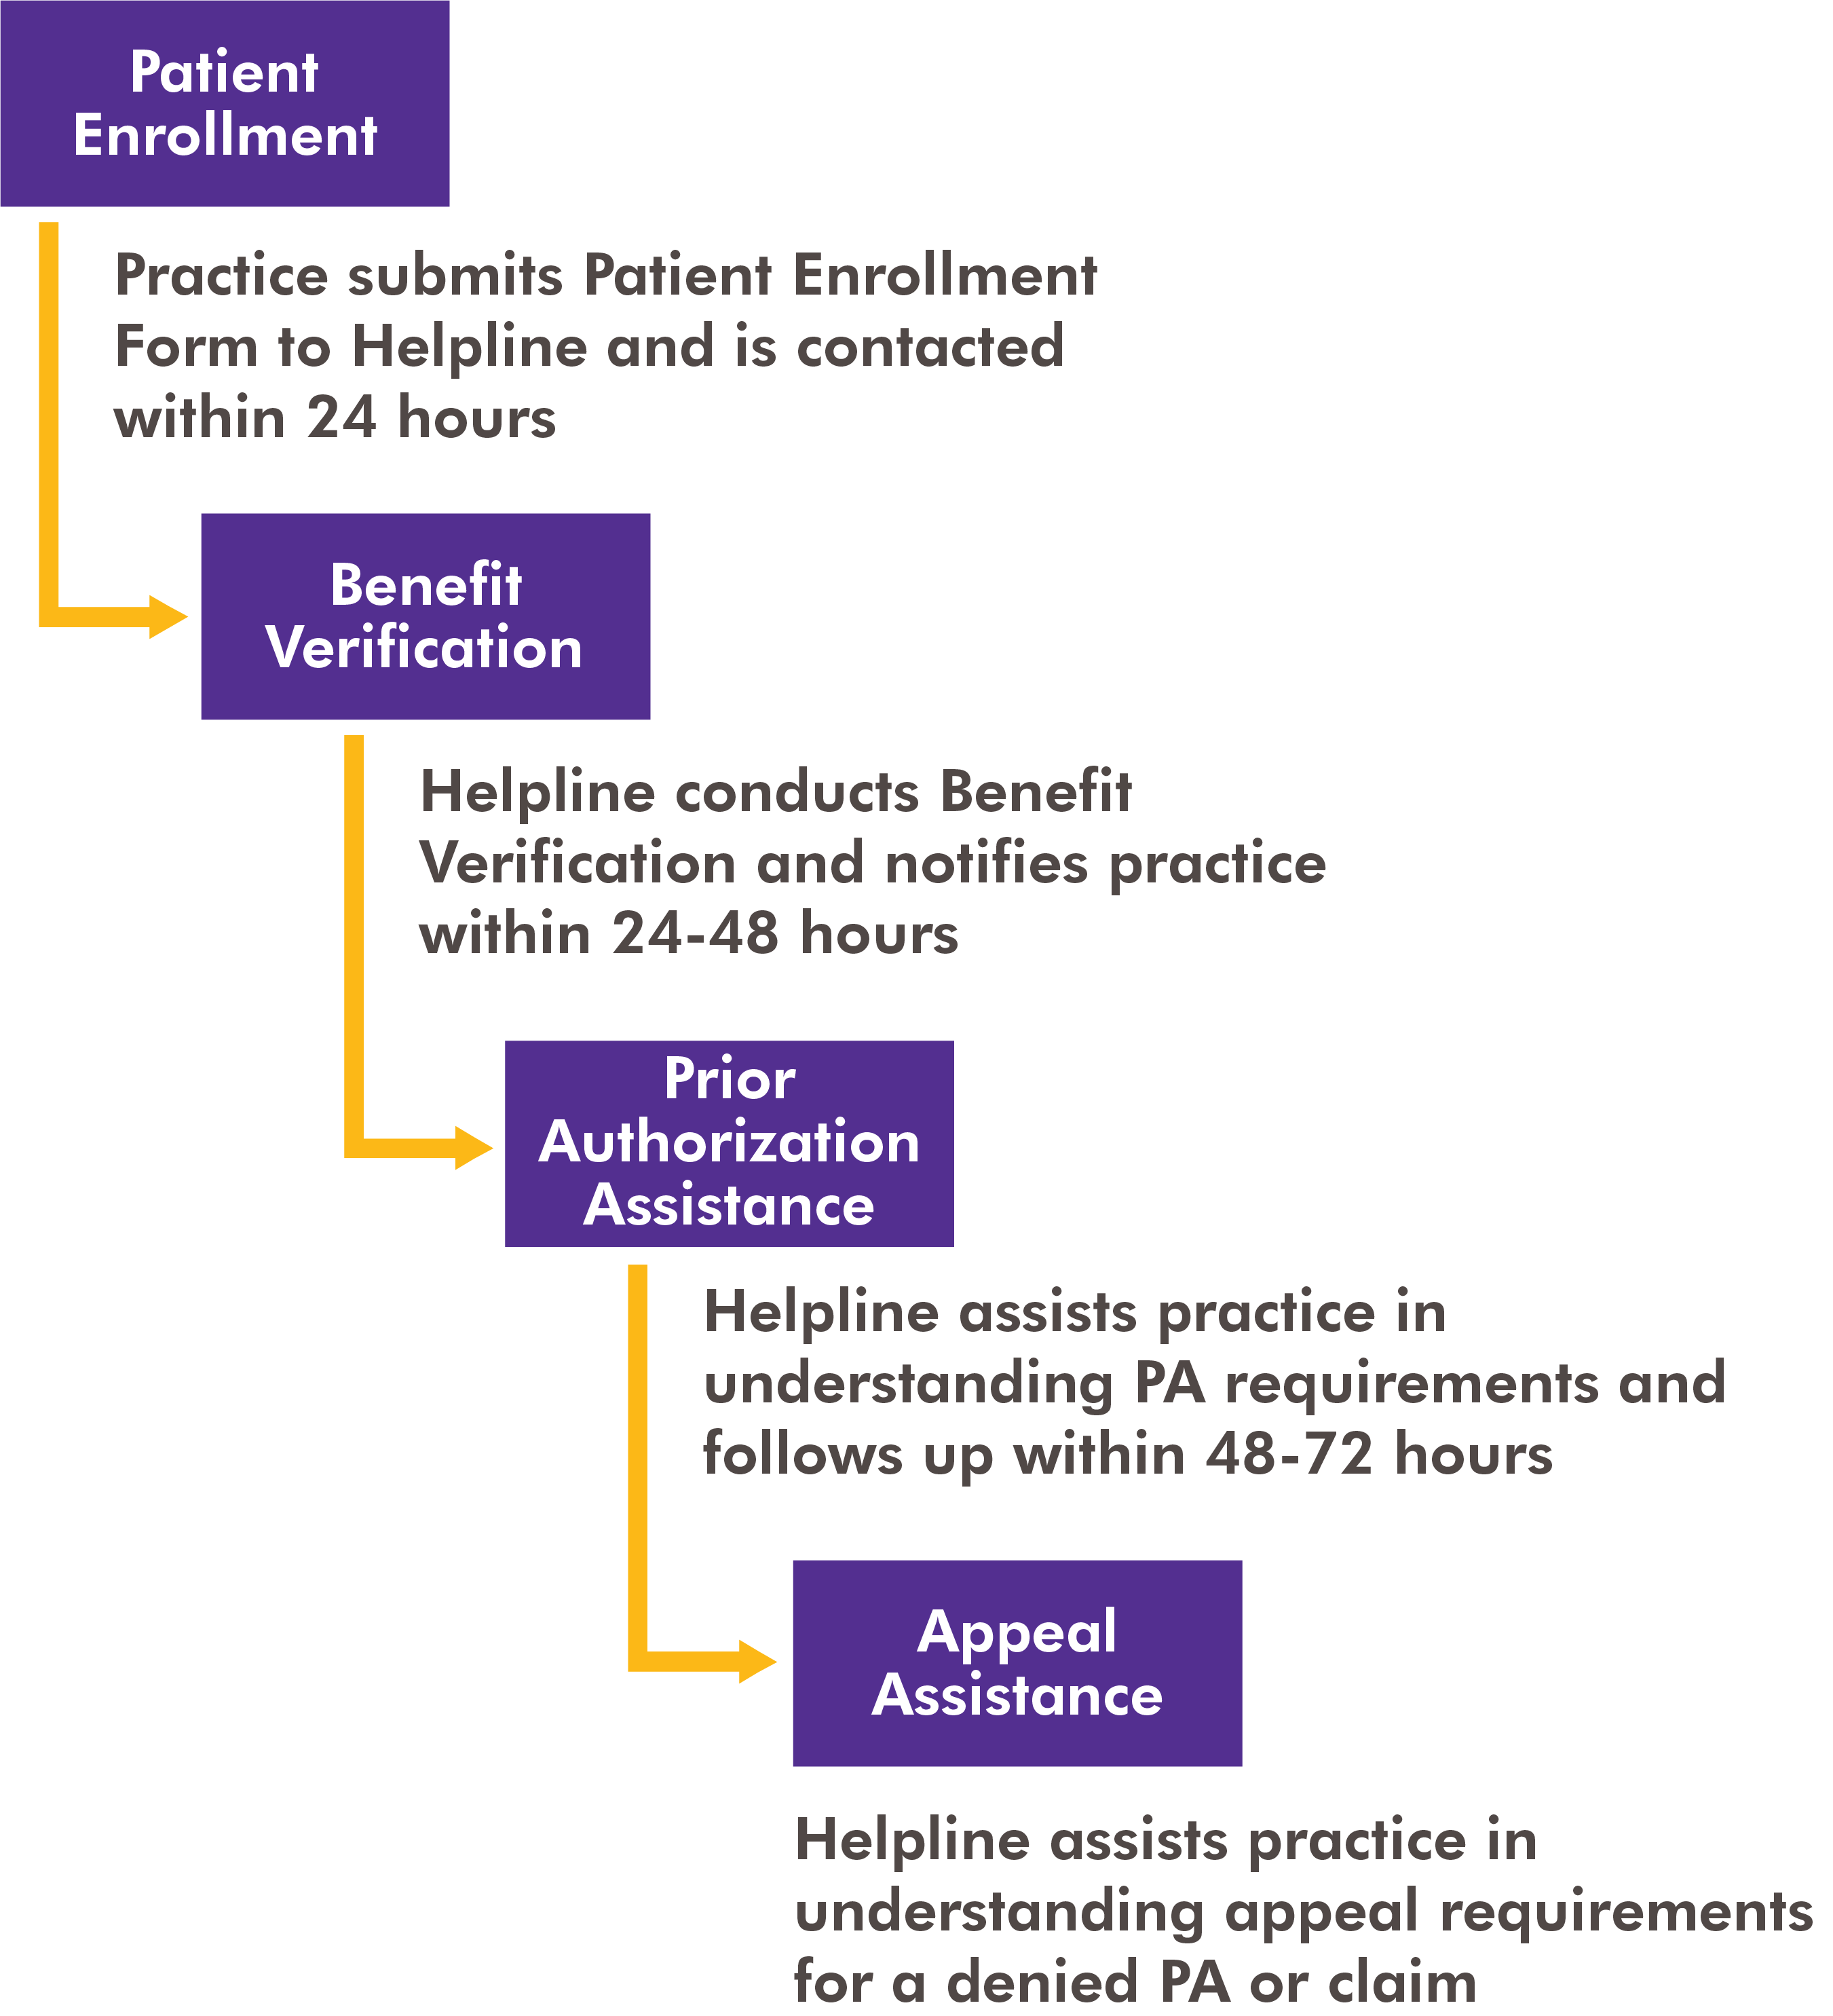 Graphic illustrating the step-by-step process for helping patients access Axumin